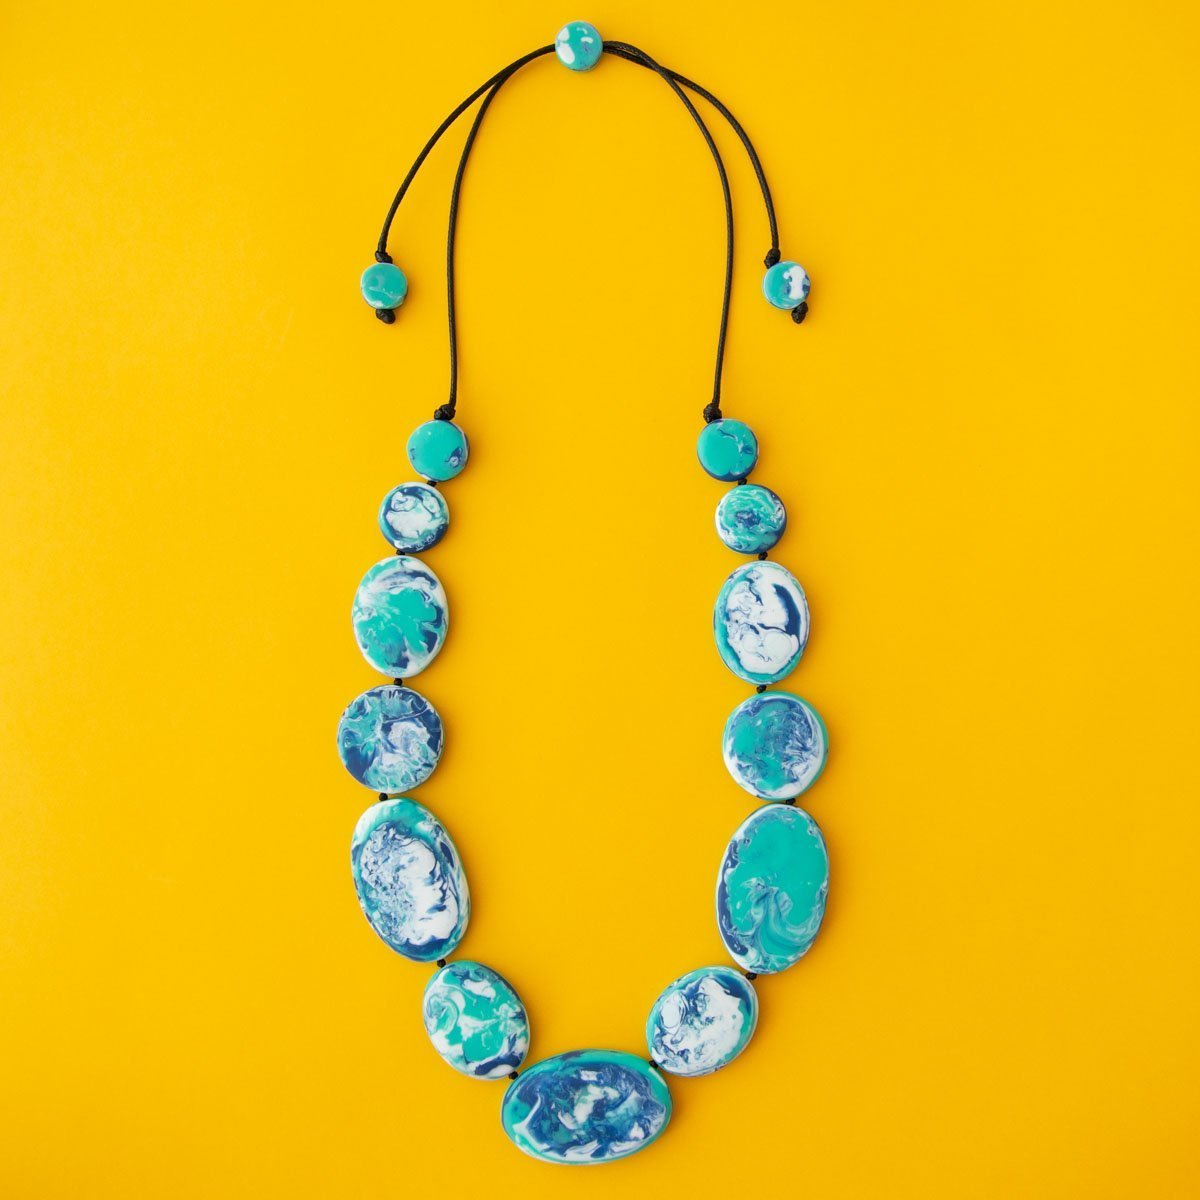 RO2080NK-AQUABLUE-SEAFOAM-NECKLACE-YELLOW-BACKGROUND.jpg